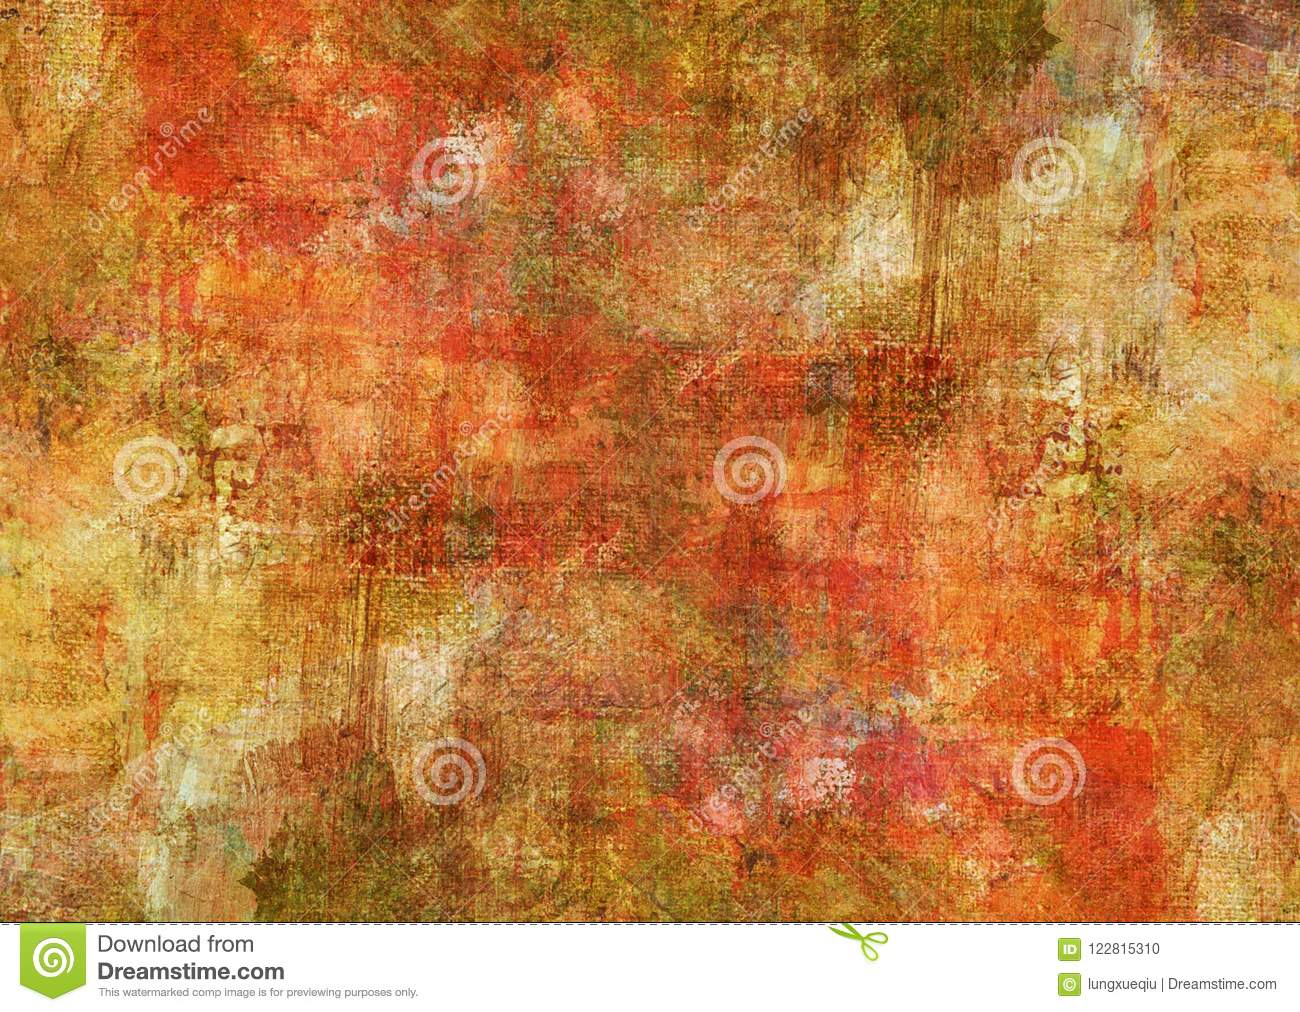 Mystic Red Canvas Abstract Painting Yellow Brown Dark Grunge Rusty Distorted Decay Old Texture for Autumn Background Wallpaper